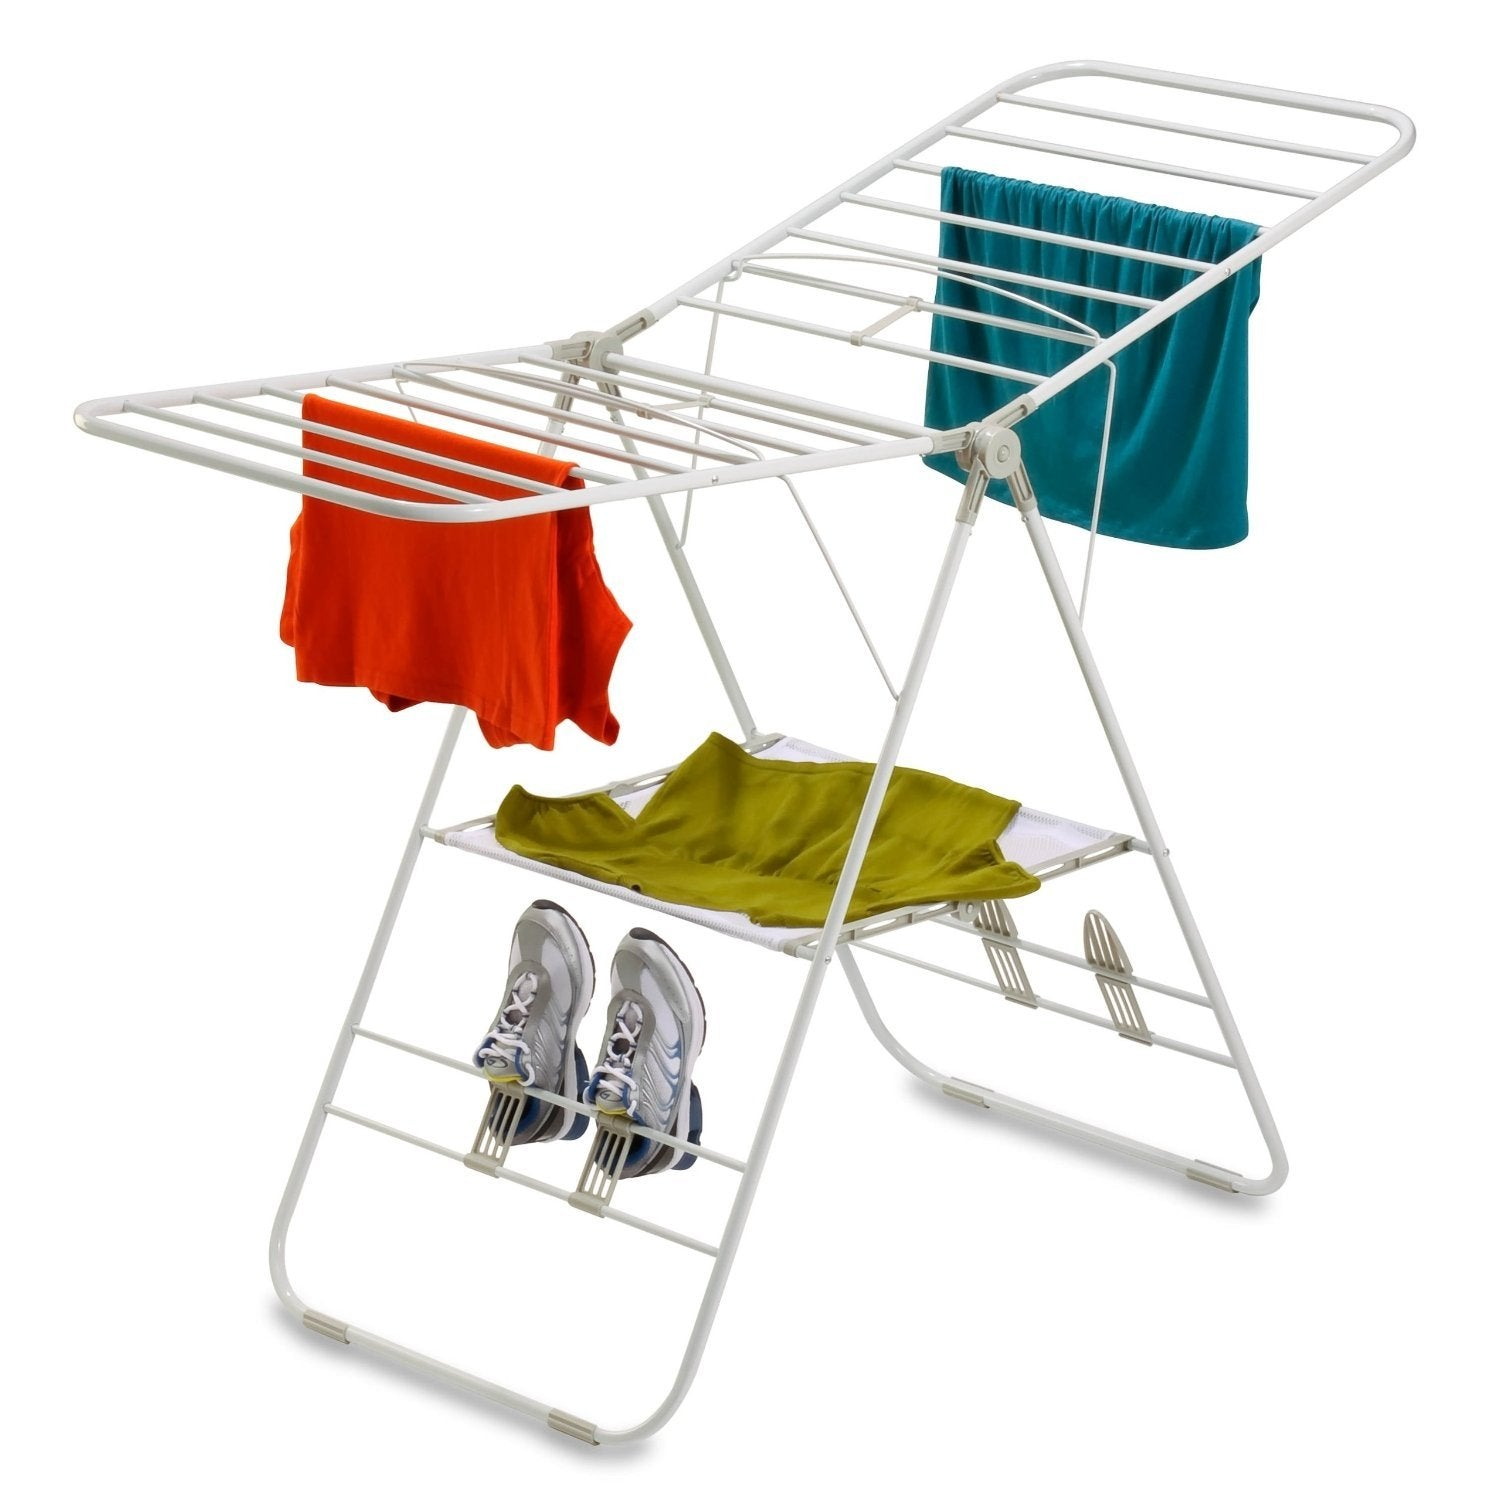 Heavy Duty Metal Folding Laundry Drying Rack with Shoe Holders in White